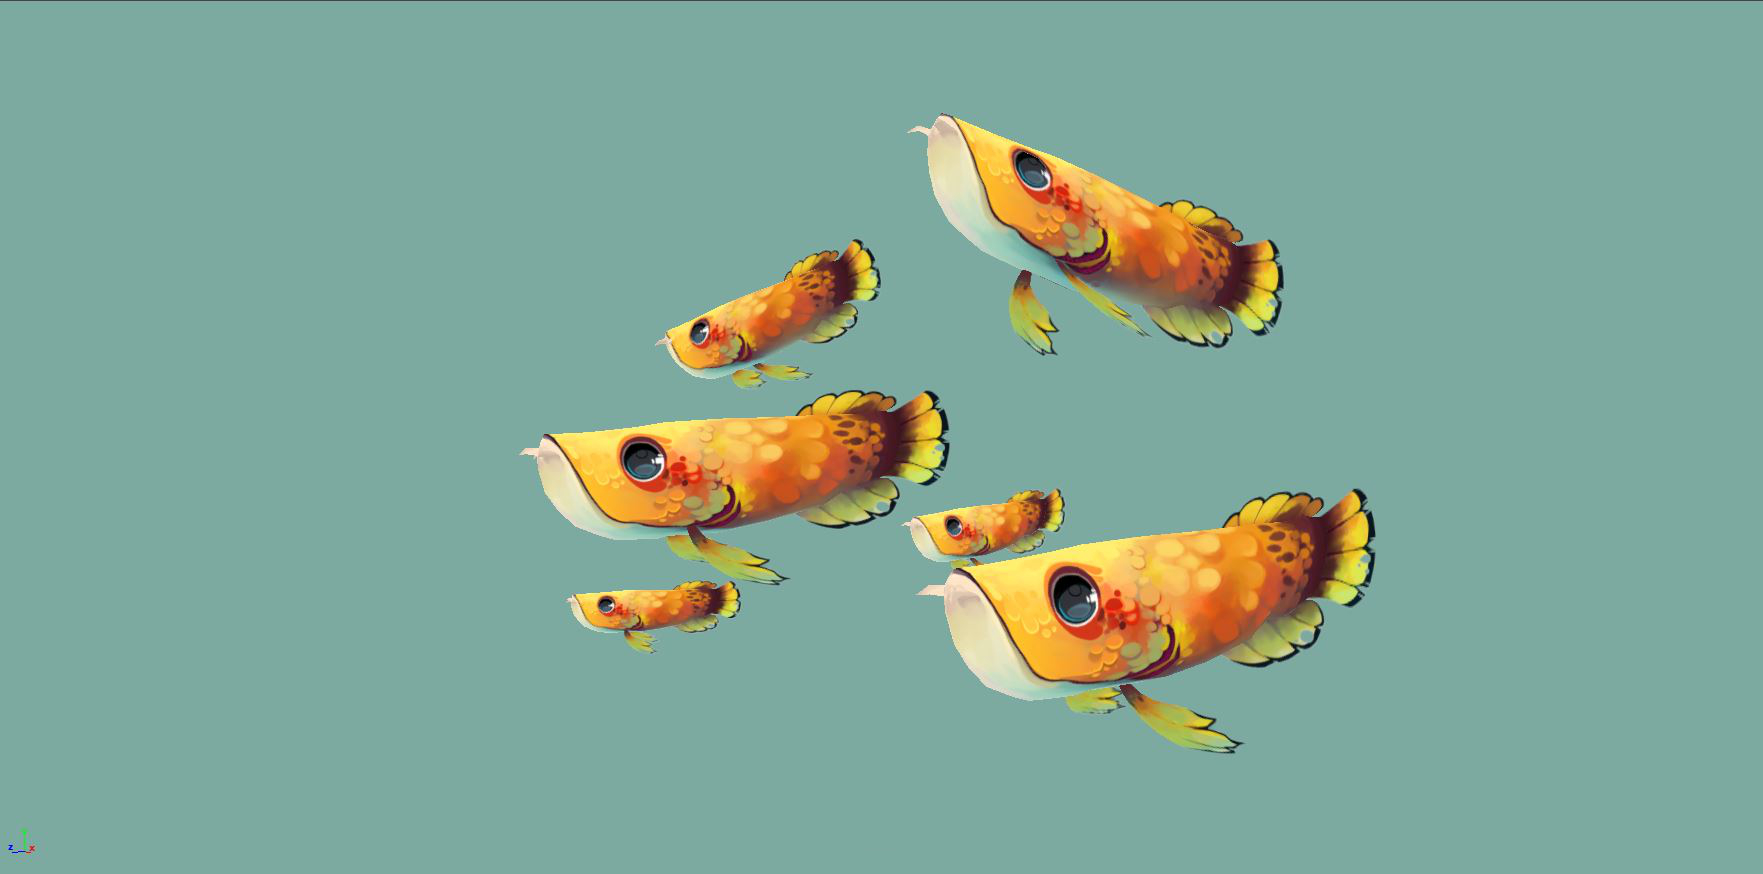 Inspired by arowana fish, these little guys were made in 3 days, have 712 tris, 512x512 px diffuse texture, and hair card fins.